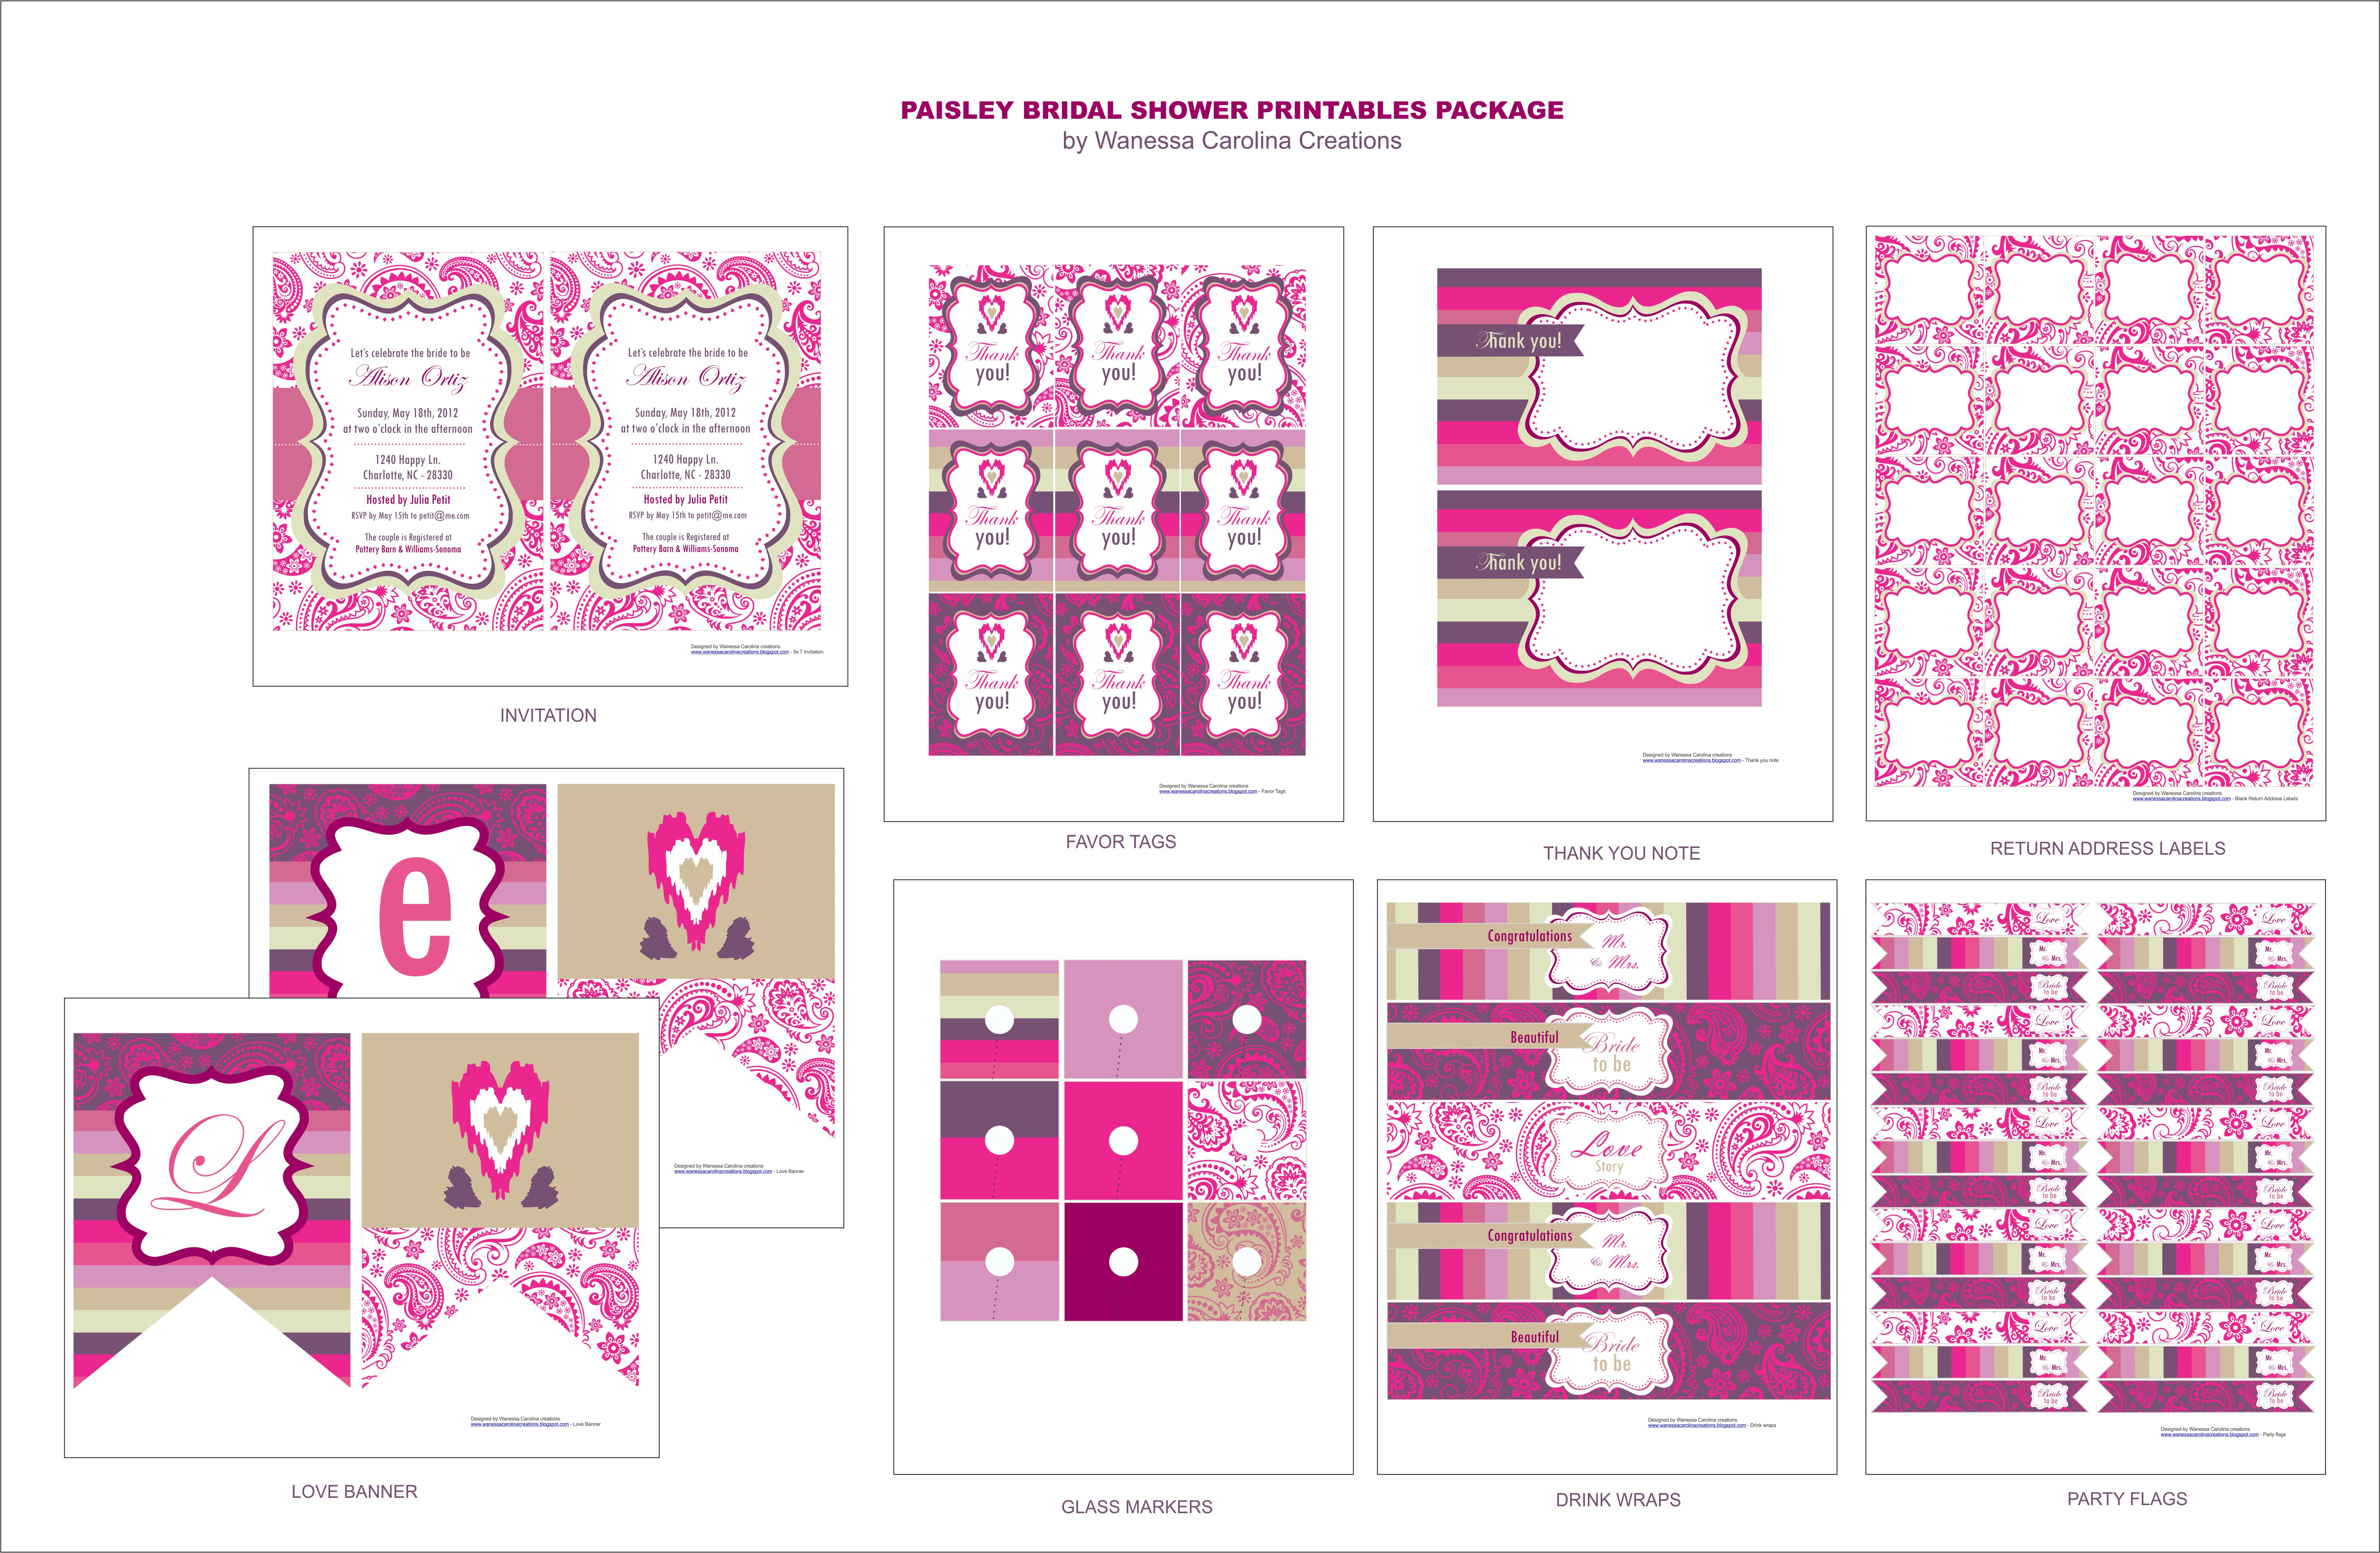 Free Bridal Shower Printables From Wanessa Carolina Creations - Free Bridal Shower Printable Decorations